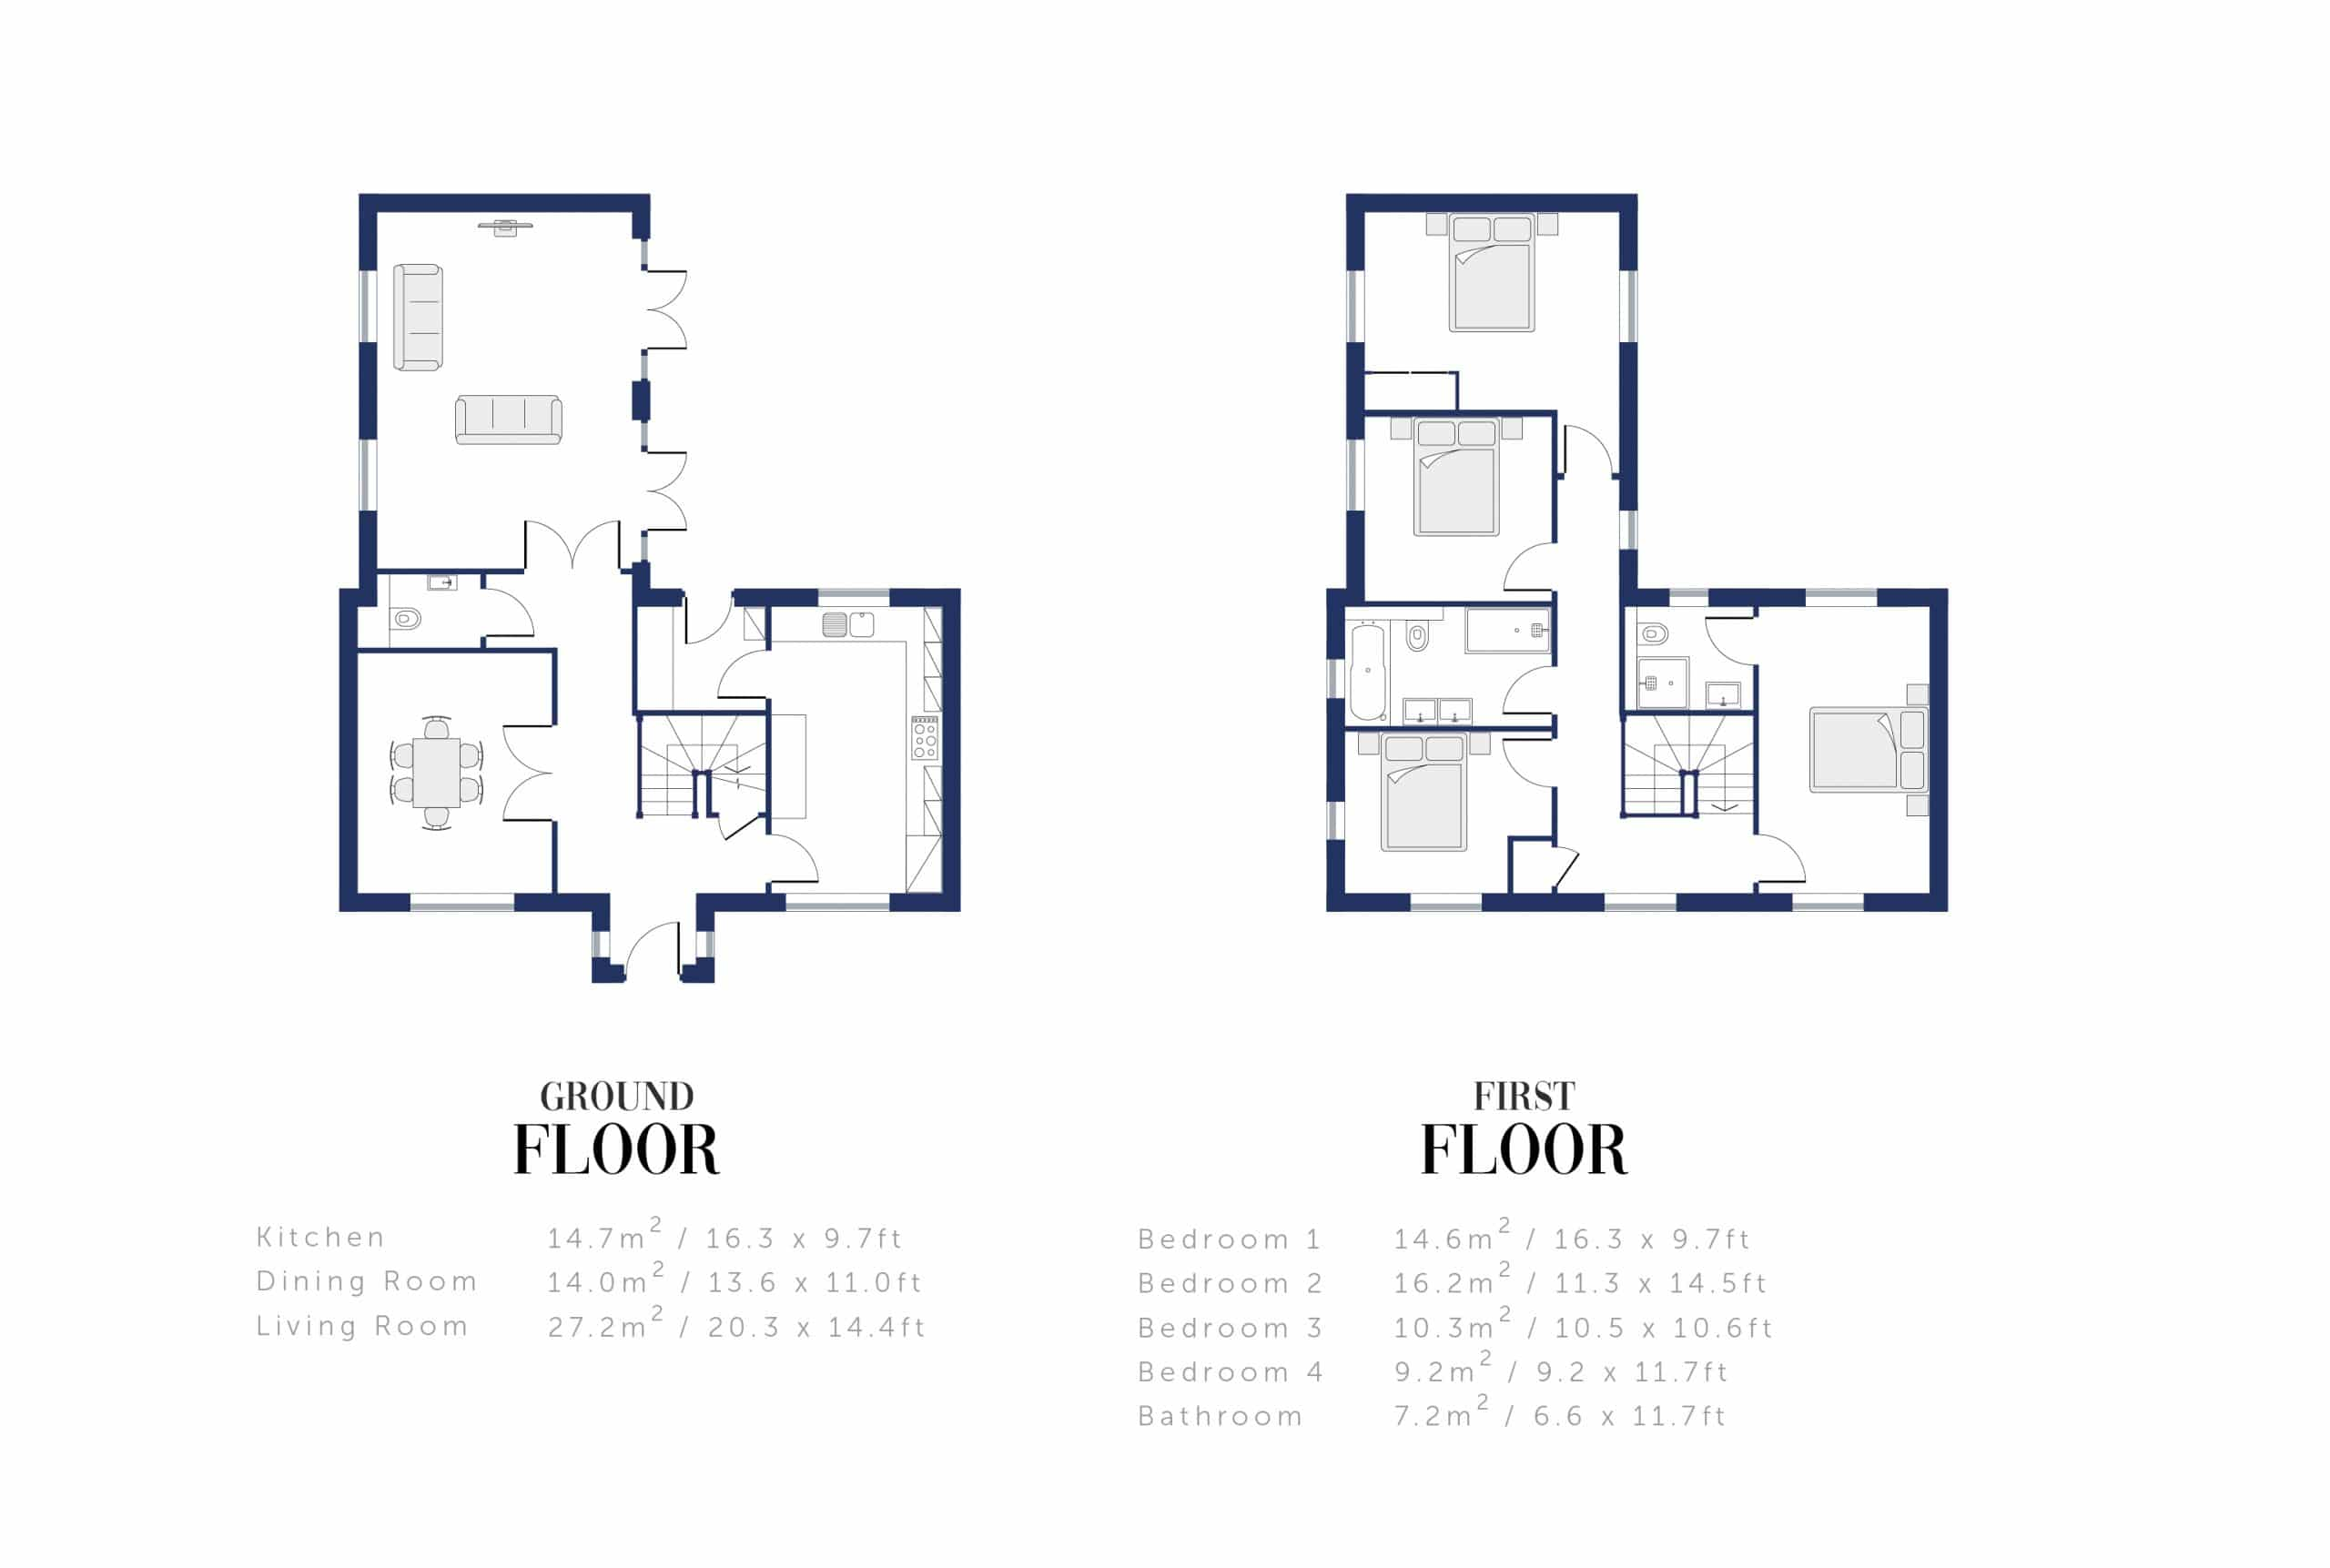 Sunningdale Millers Floor Plan and Sizing for WEB10